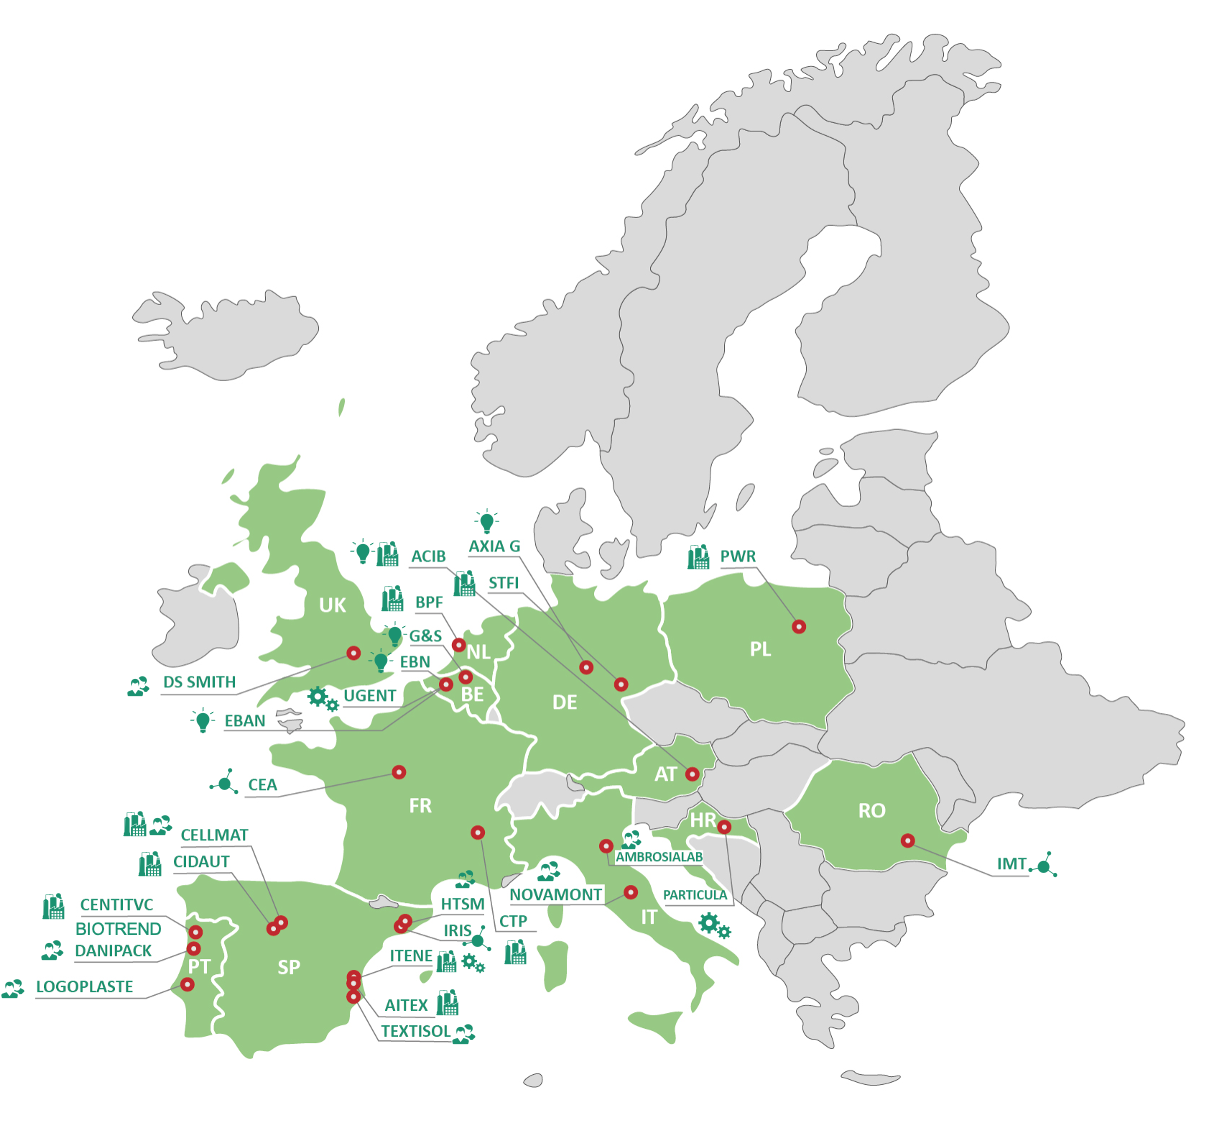 Map of Europe and location of Bionanopolys partners